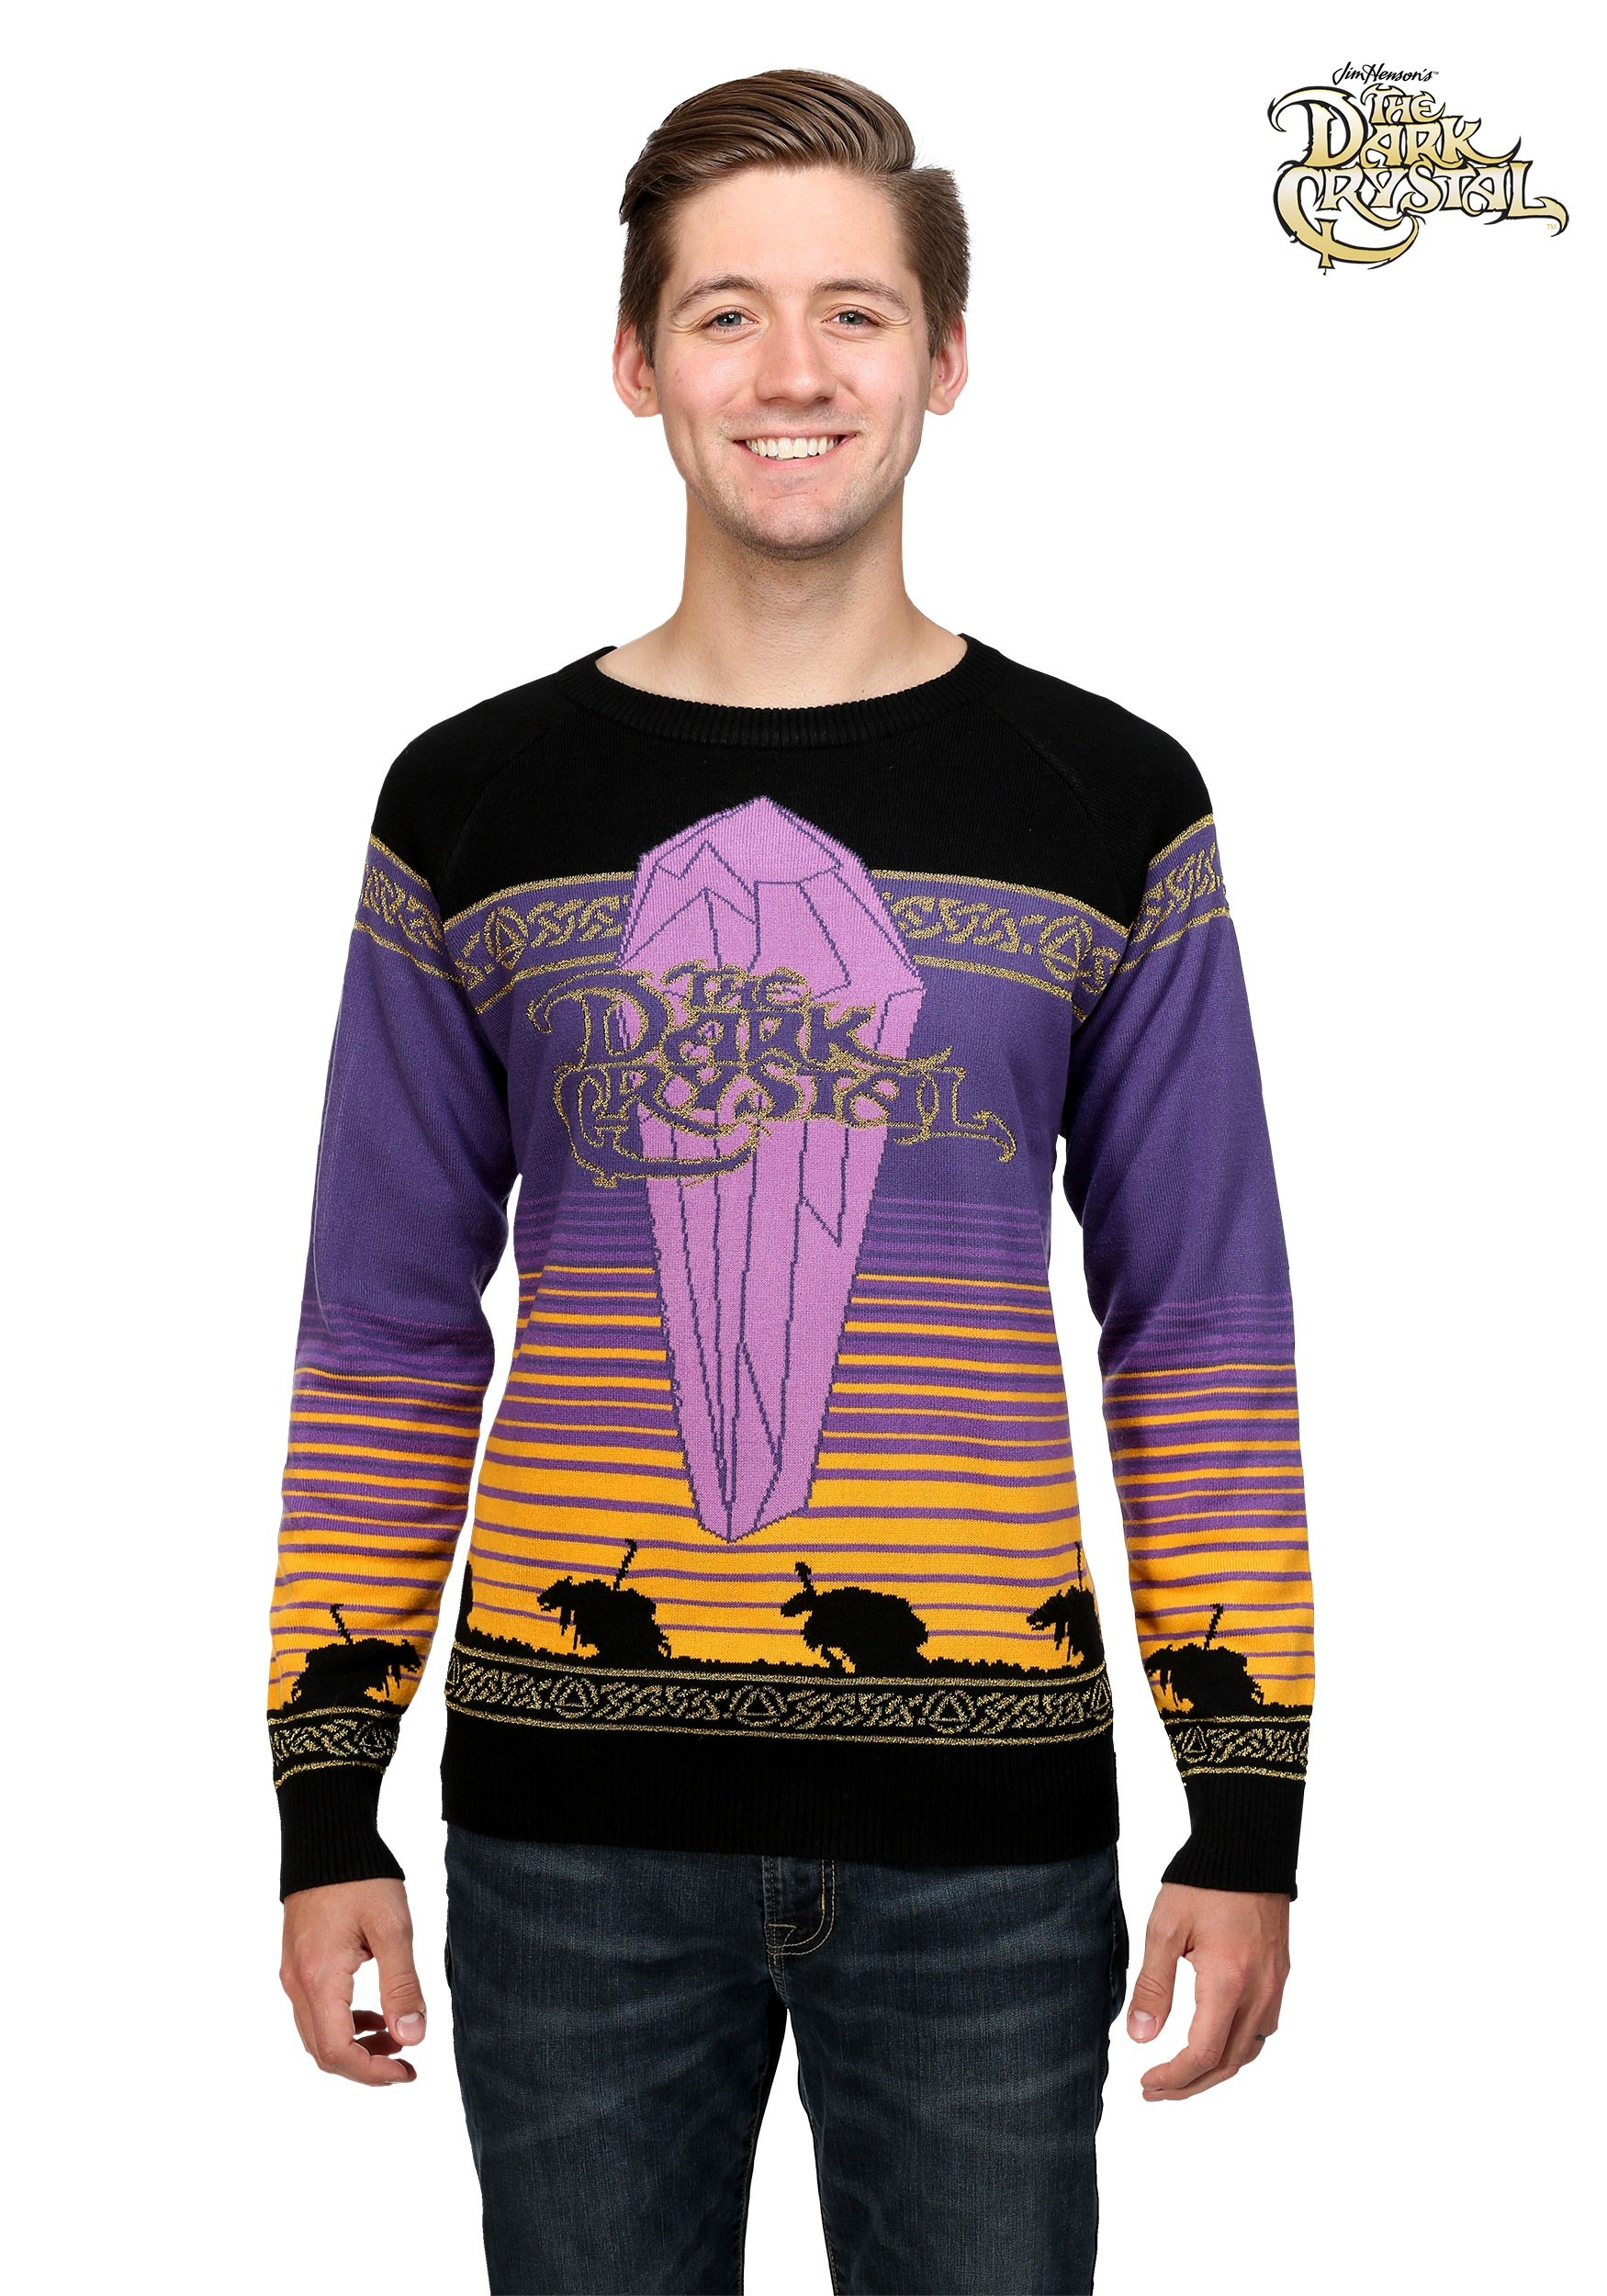 The Dark Crystal Movie Logo Ugly Christmas Sweater